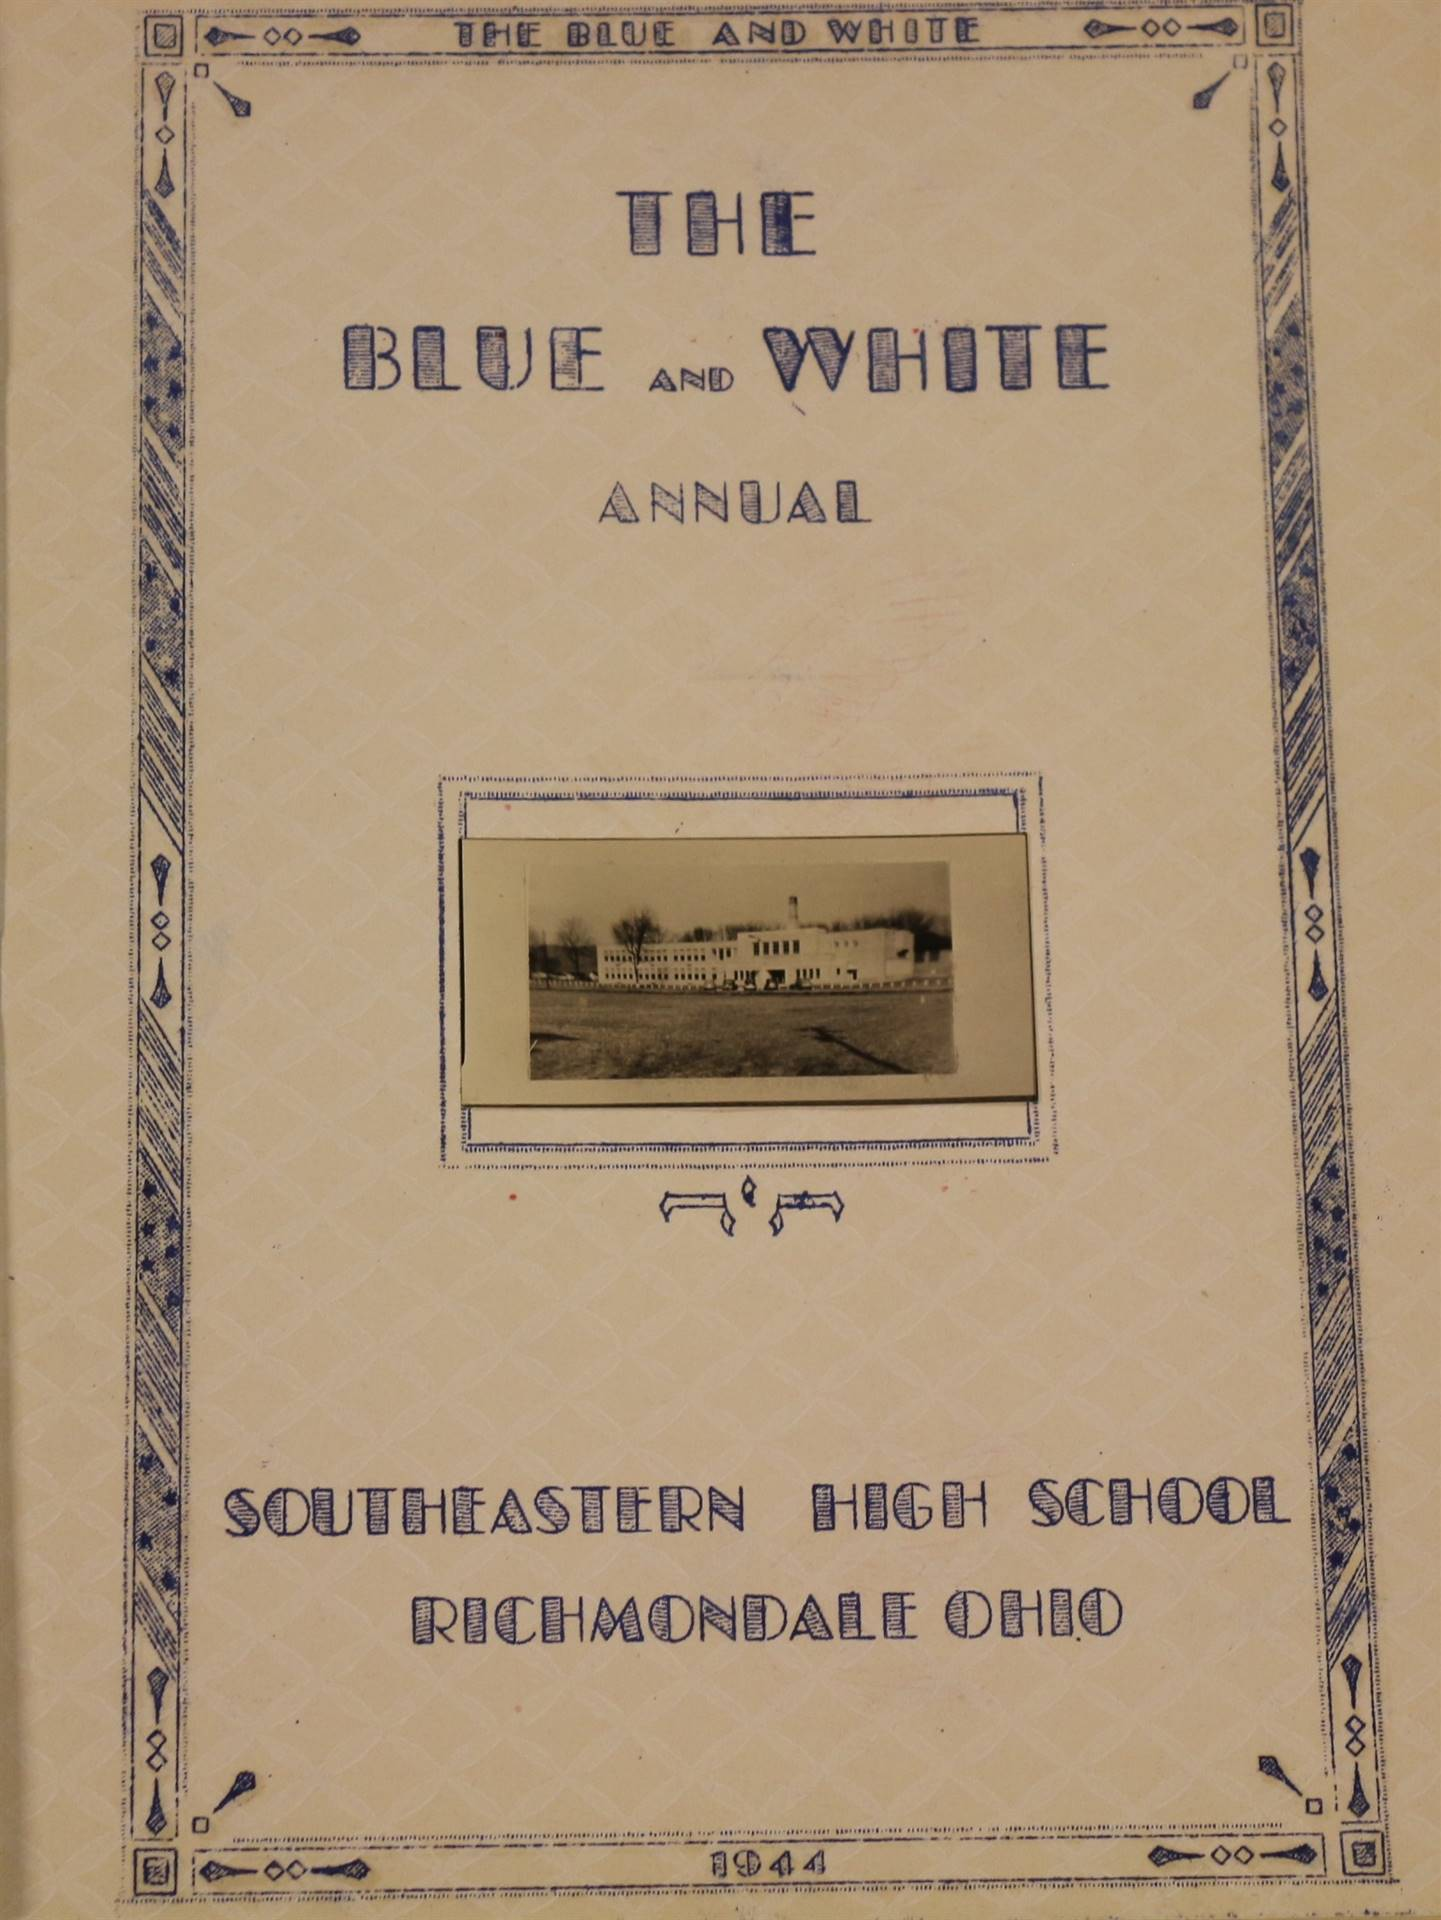 1944 inside page